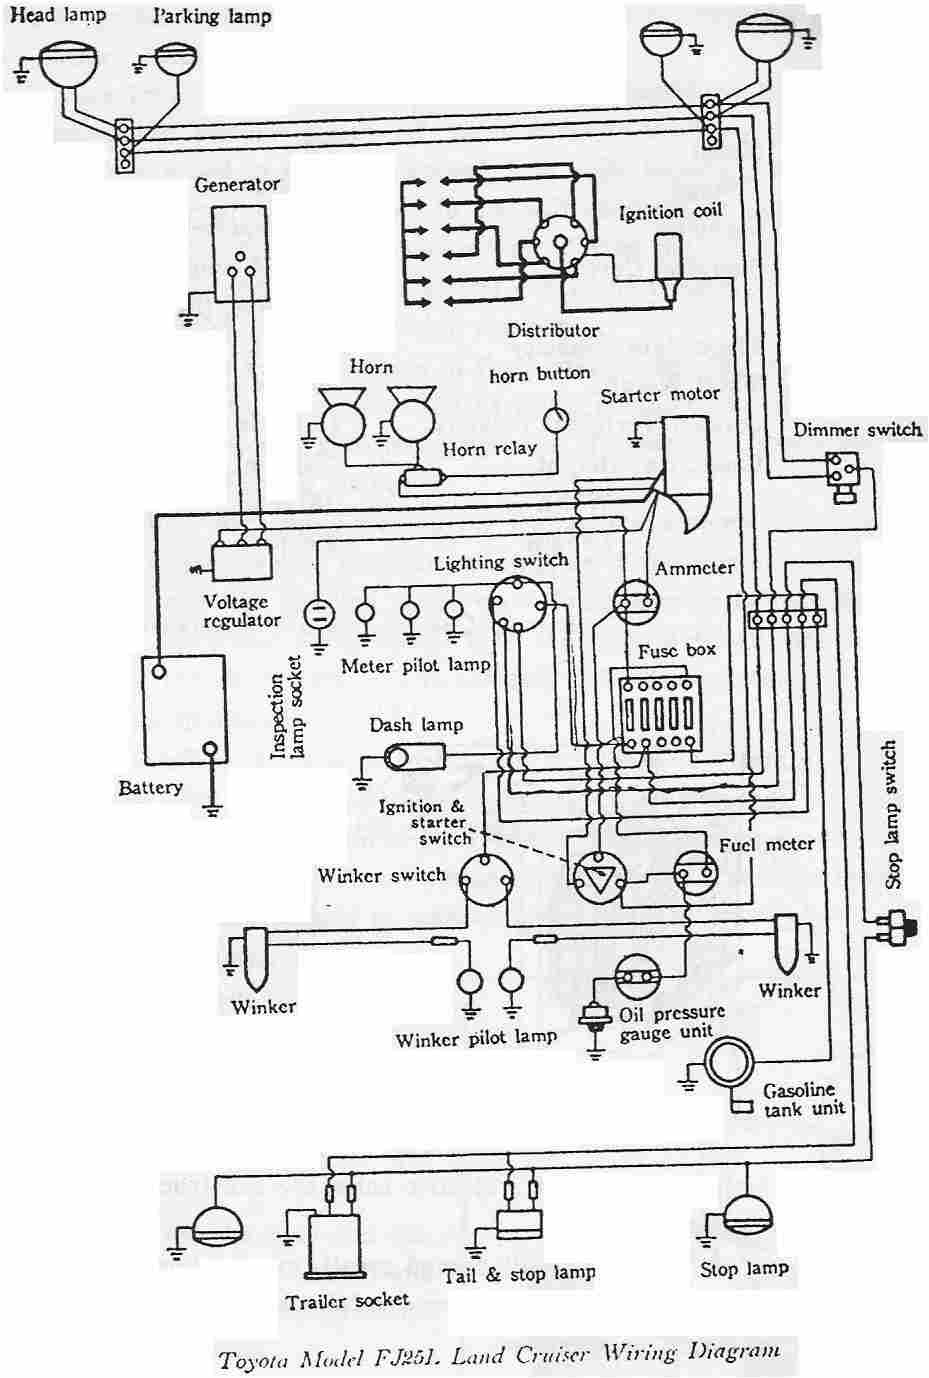 1994 Toyota Hilux Wiring Diagram - Wiring Diagrams on engine diagrams, led circuit diagrams, motor diagrams, gmc fuse box diagrams, electrical diagrams, lighting diagrams, pinout diagrams, switch diagrams, transformer diagrams, honda motorcycle repair diagrams, battery diagrams, troubleshooting diagrams, smart car diagrams, snatch block diagrams, hvac diagrams, series and parallel circuits diagrams, sincgars radio configurations diagrams, electronic circuit diagrams, friendship bracelet diagrams, internet of things diagrams,